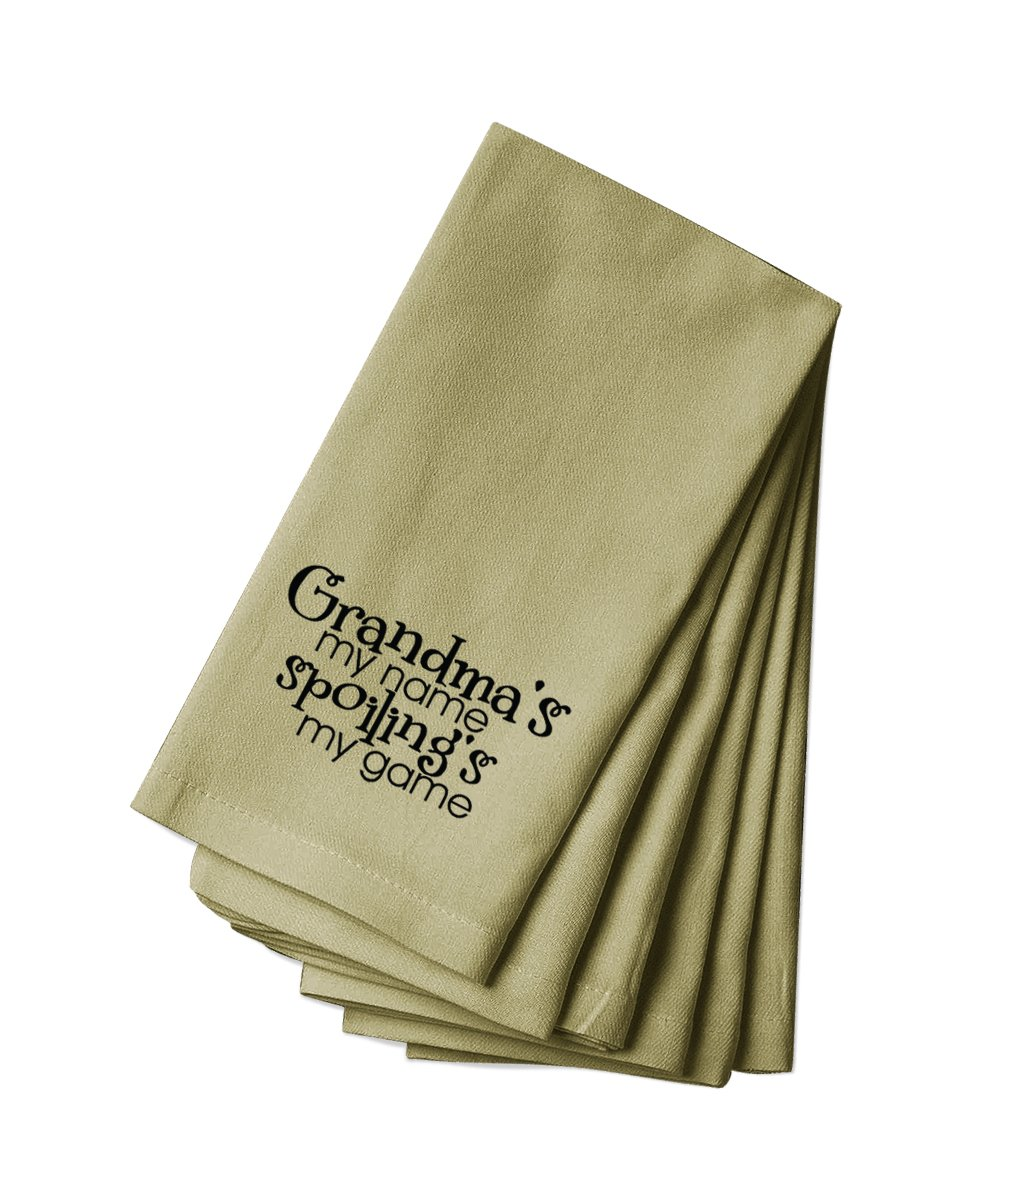 Style in Print Canvas Napkin Set Of 4 Grandma'S My Name Spoiling'S My Game #2 By